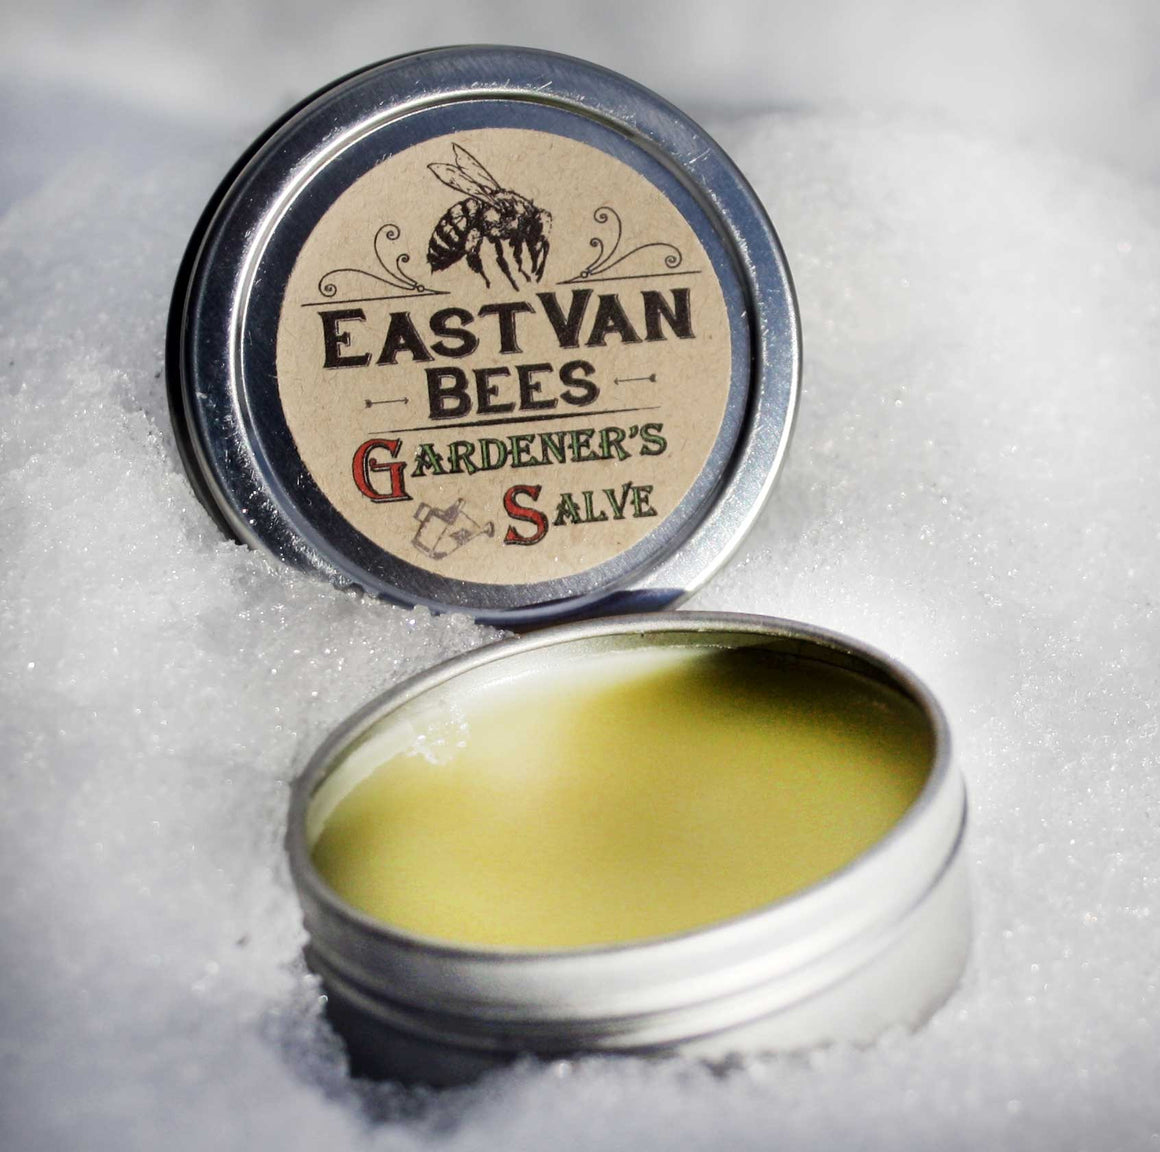 Gift Box with 100% Beeswax Skep Beehive Candle, 2 x Lip Balms, Gardeners Moisturizing Salve